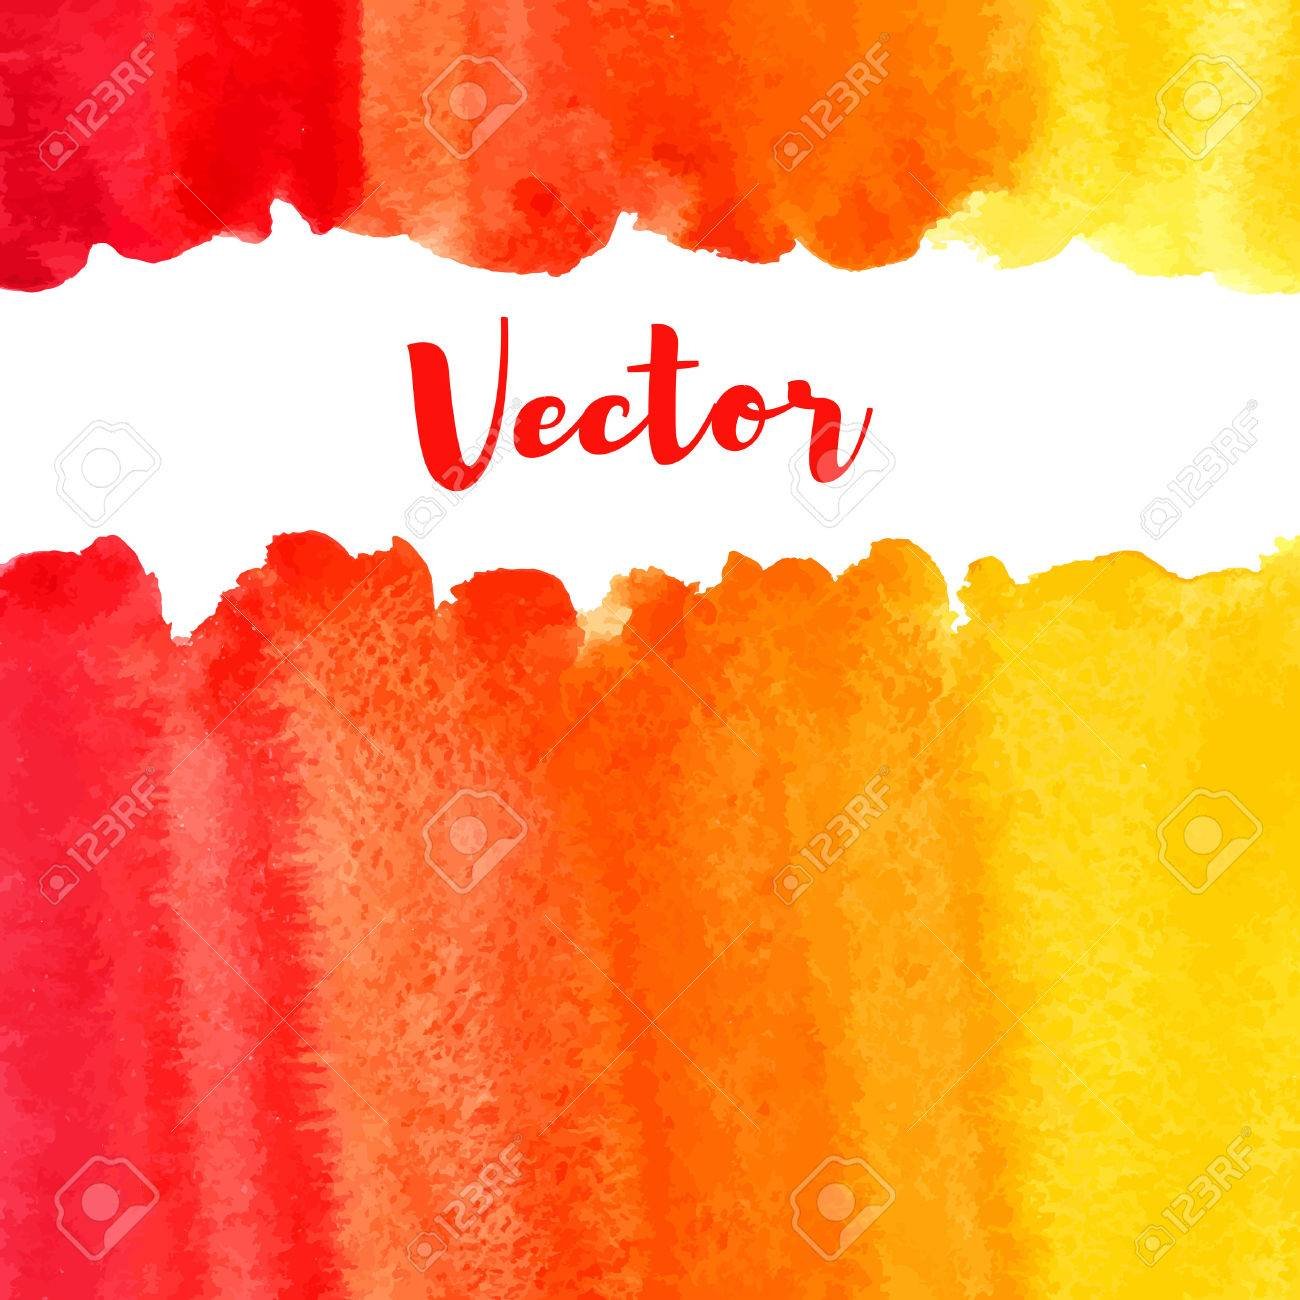 Watercolor vector background with space for text. Frame or border made of striped watercolour gradient fill - orange, red, yellow. Brush drawn texture. Fire, tropical colors. Artistic uneven edge. - 62931542